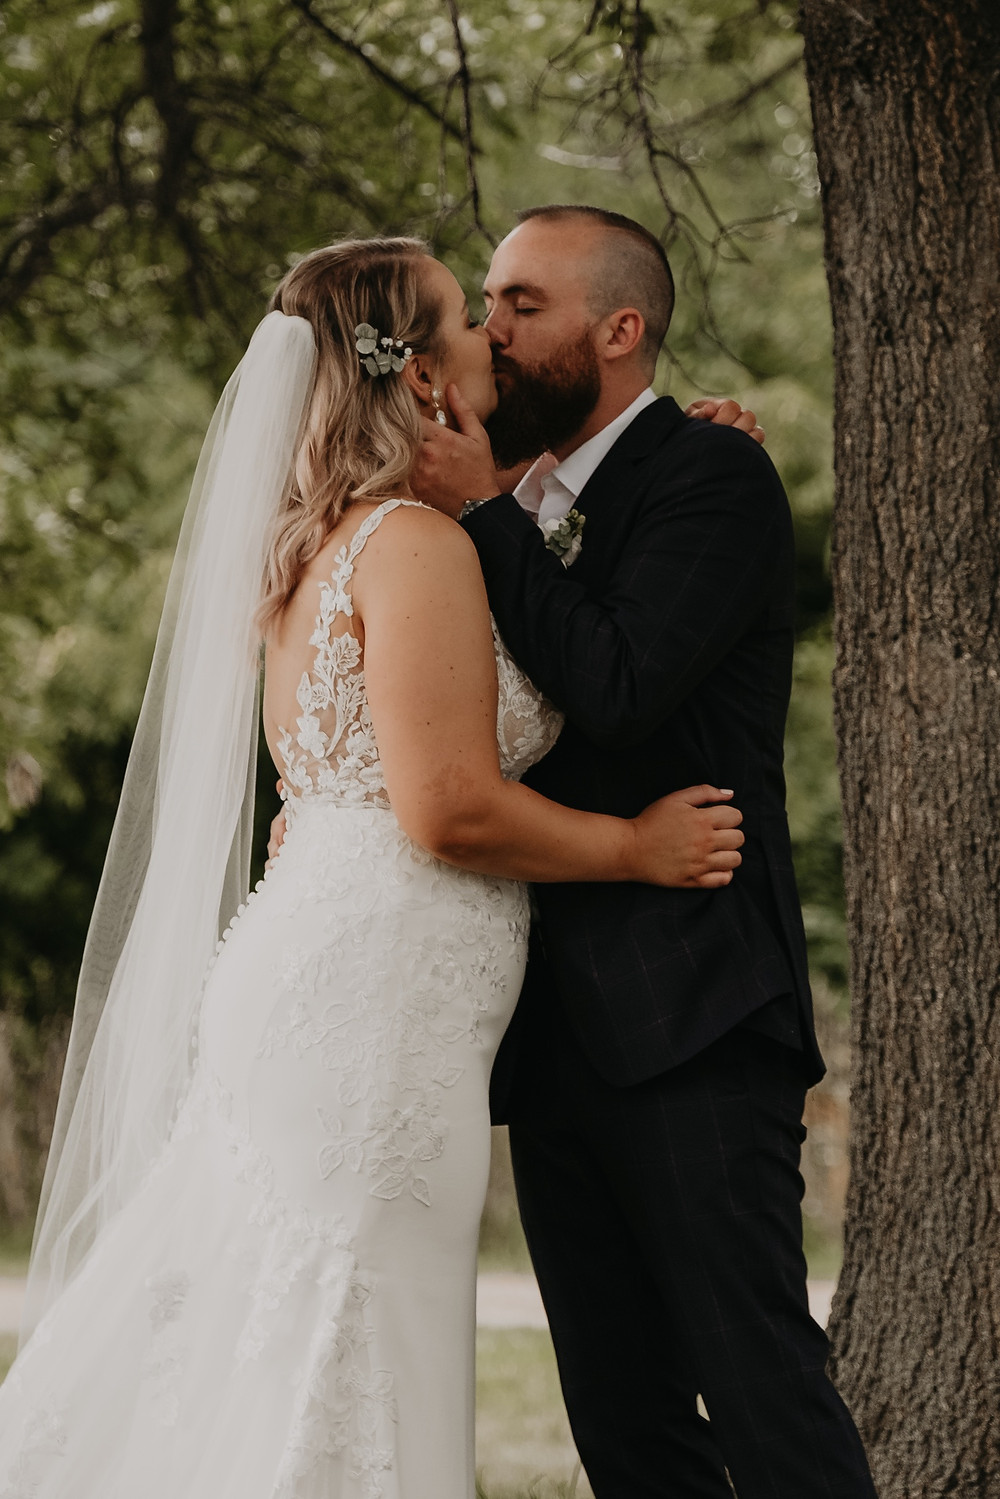 First kiss as married couple at Metro Detroit wedding ceremony. Photographed by Nicole Leanne Photography.